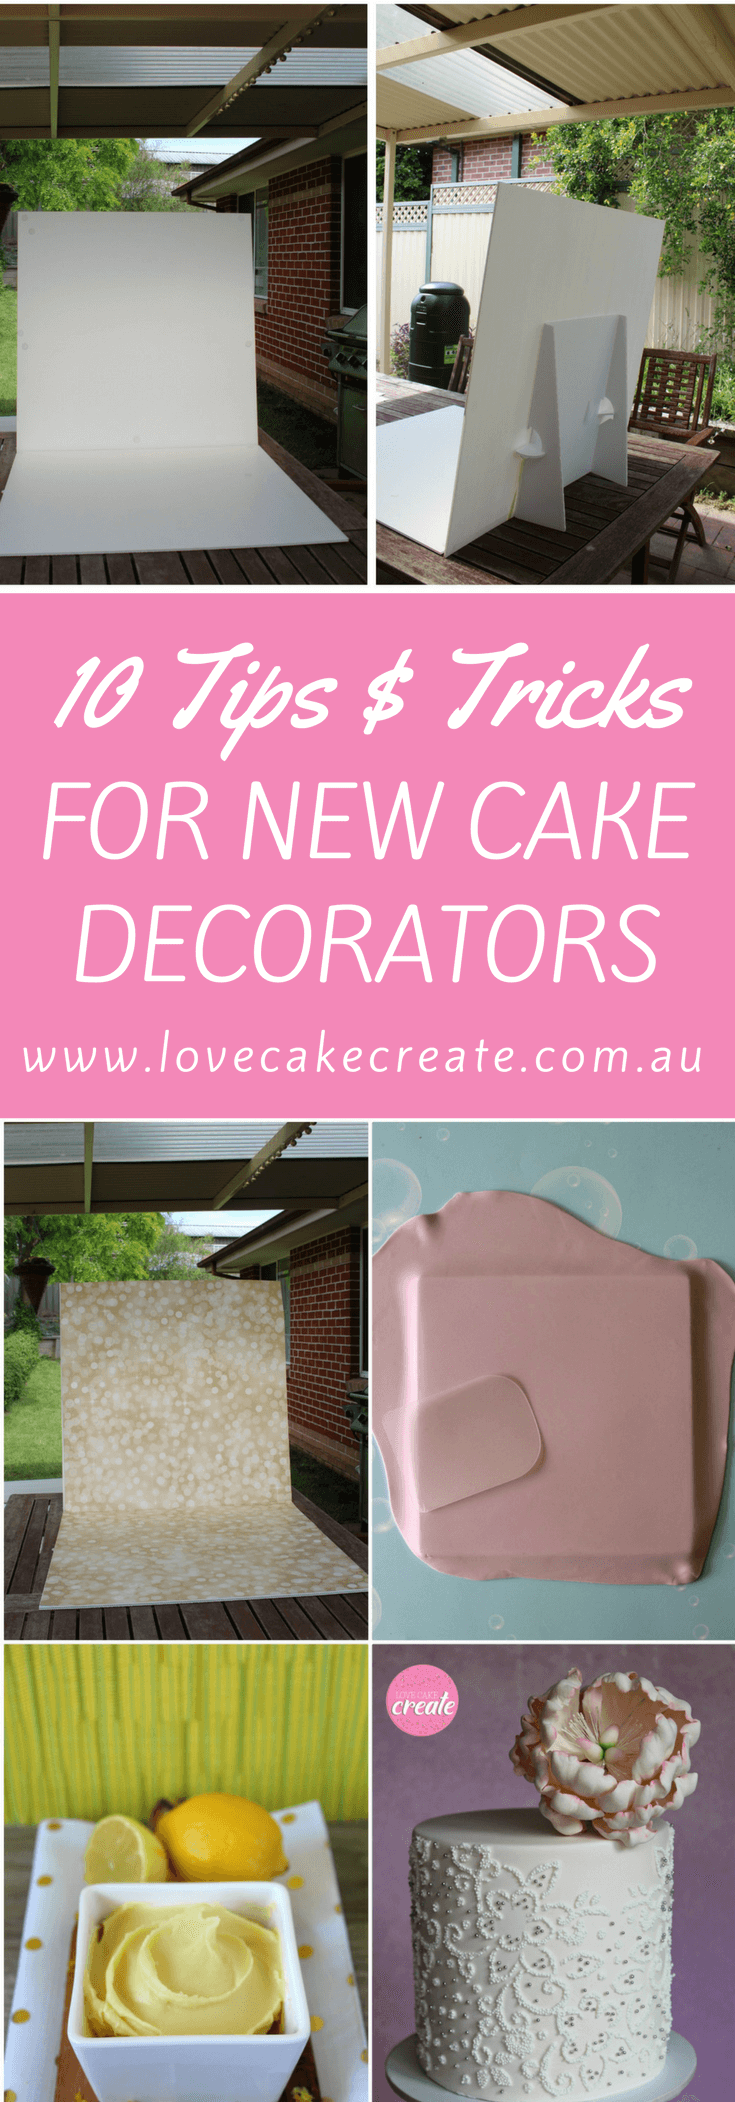 10 tips and tricks for new cake decorators - by Love Cake Create